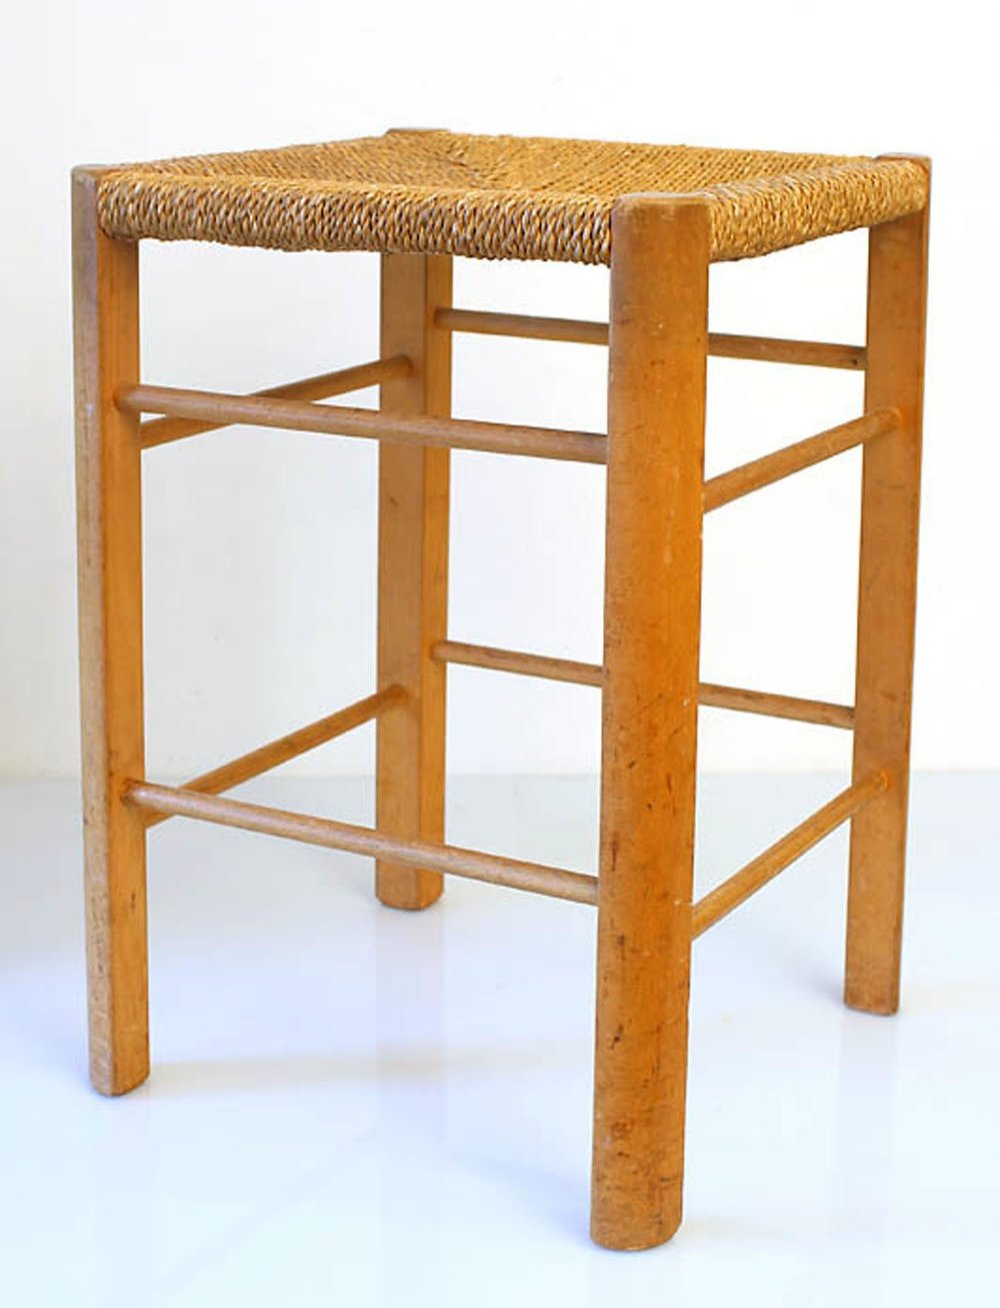 50s vintage wooden rope stool